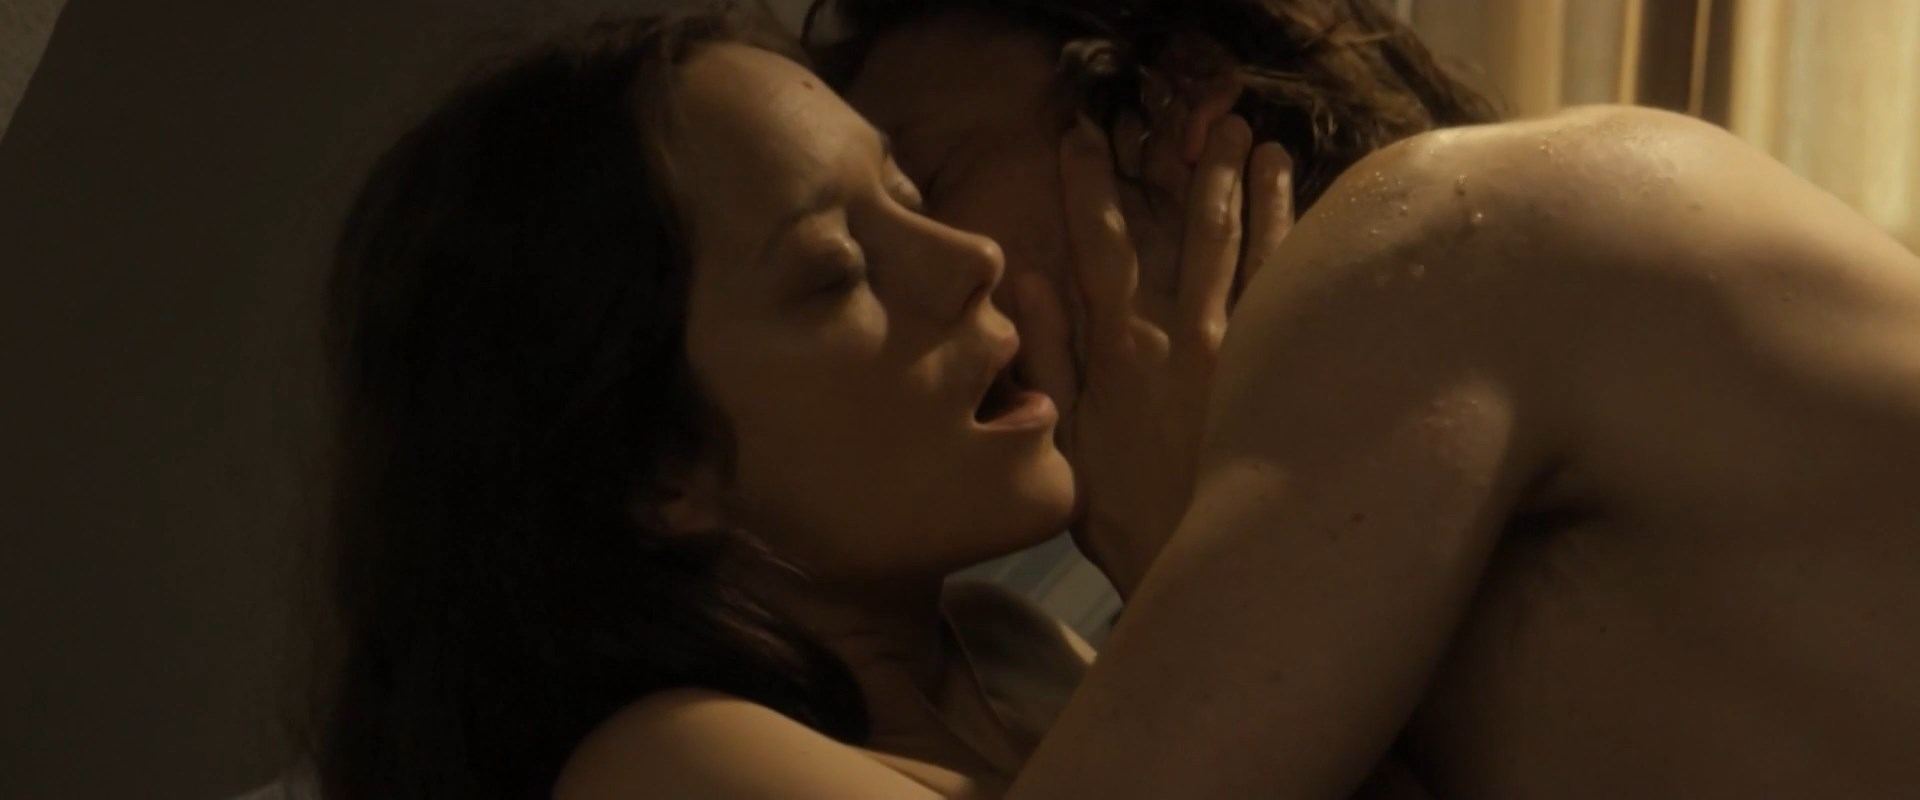 Sexy Cotillard Marion Clips Nude Pictures